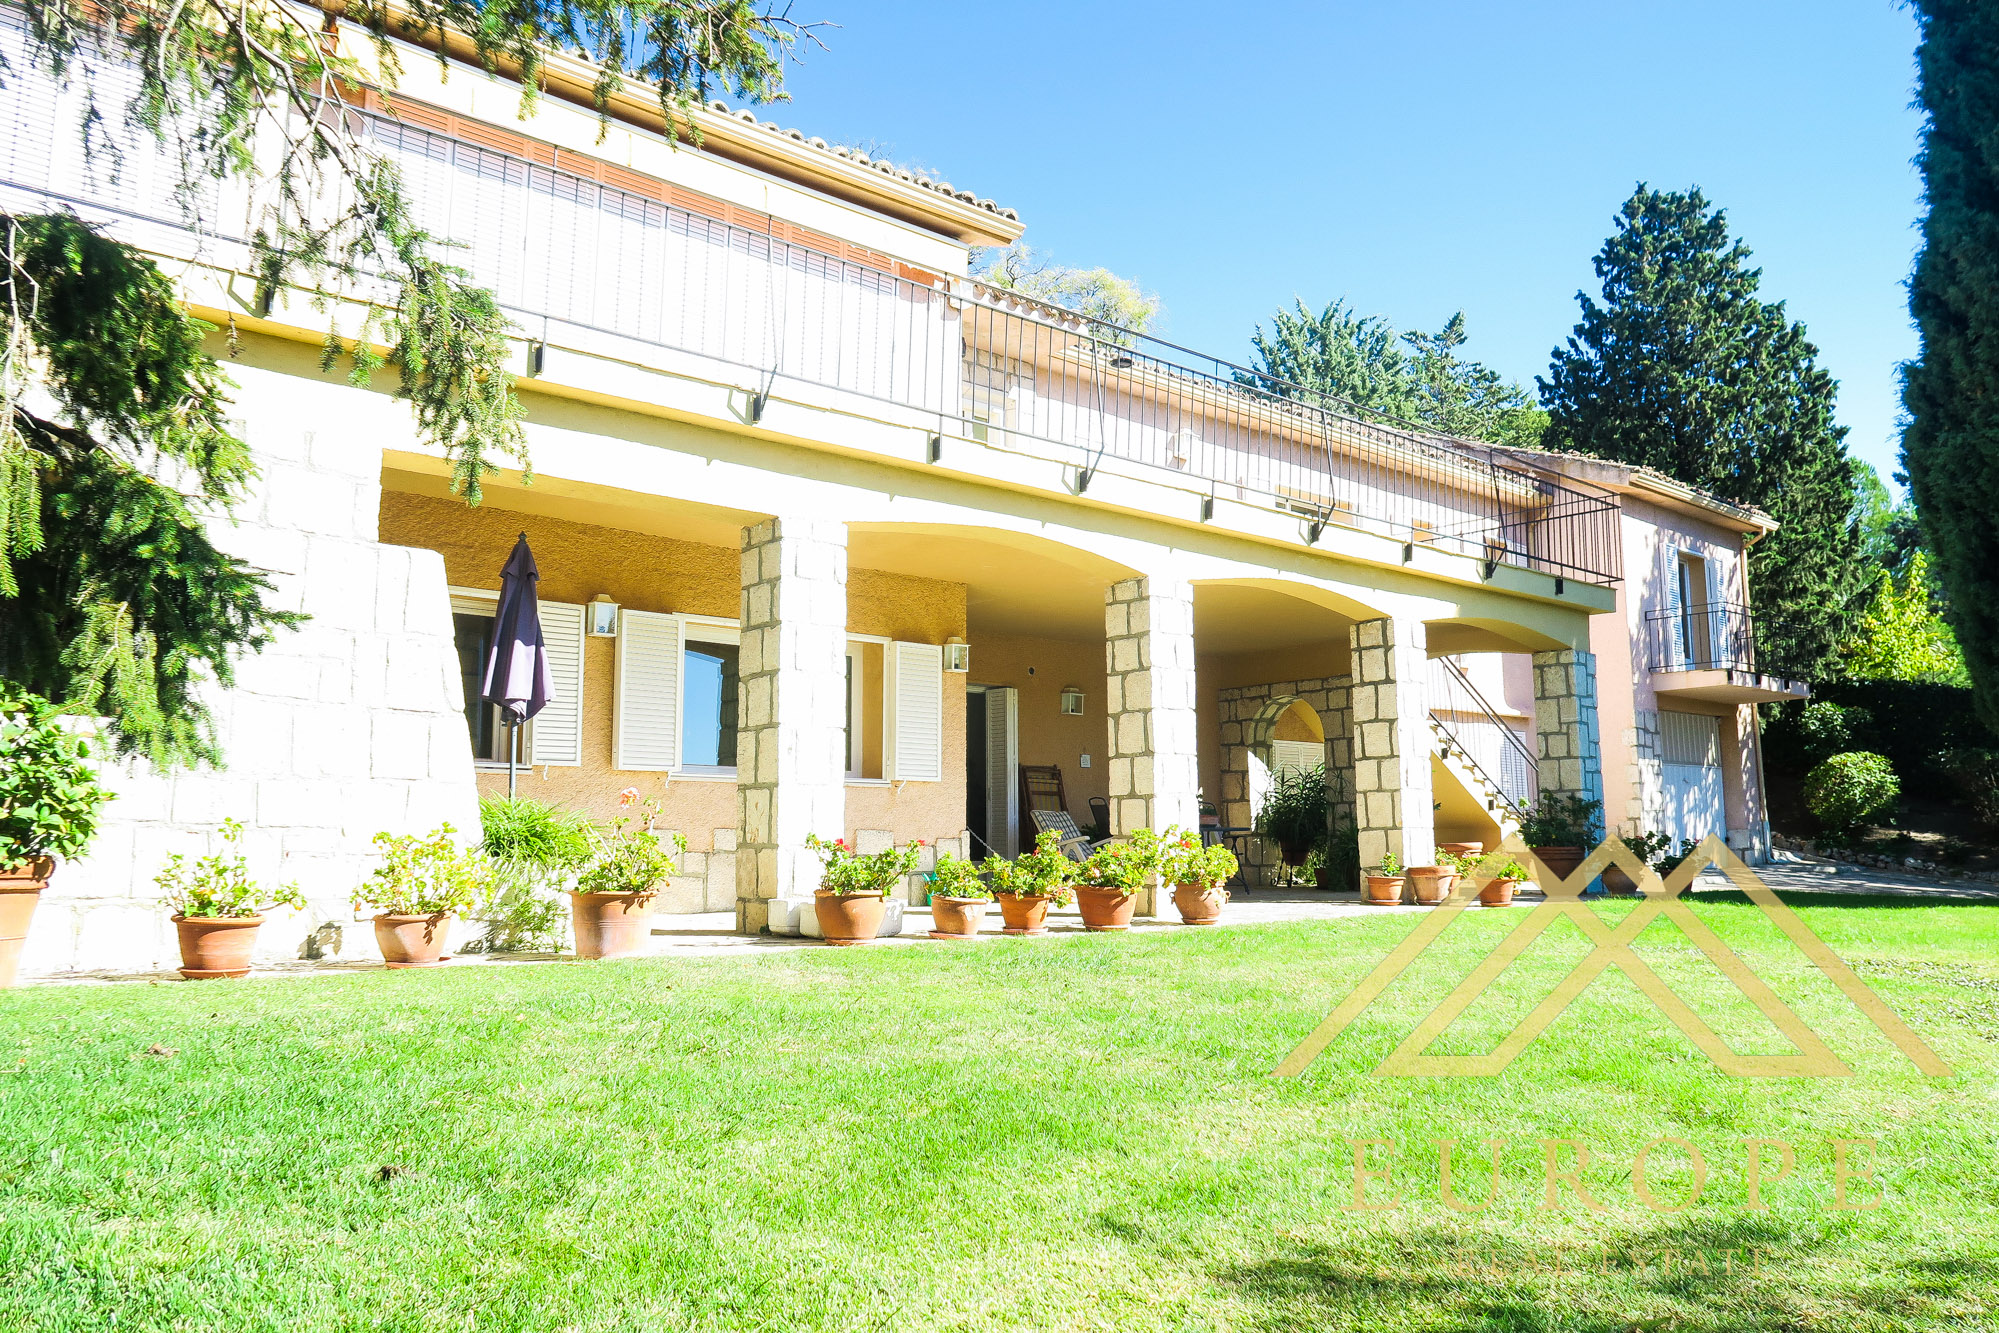 540m² Villa for Sale in Fuente del Fresno, Madrid